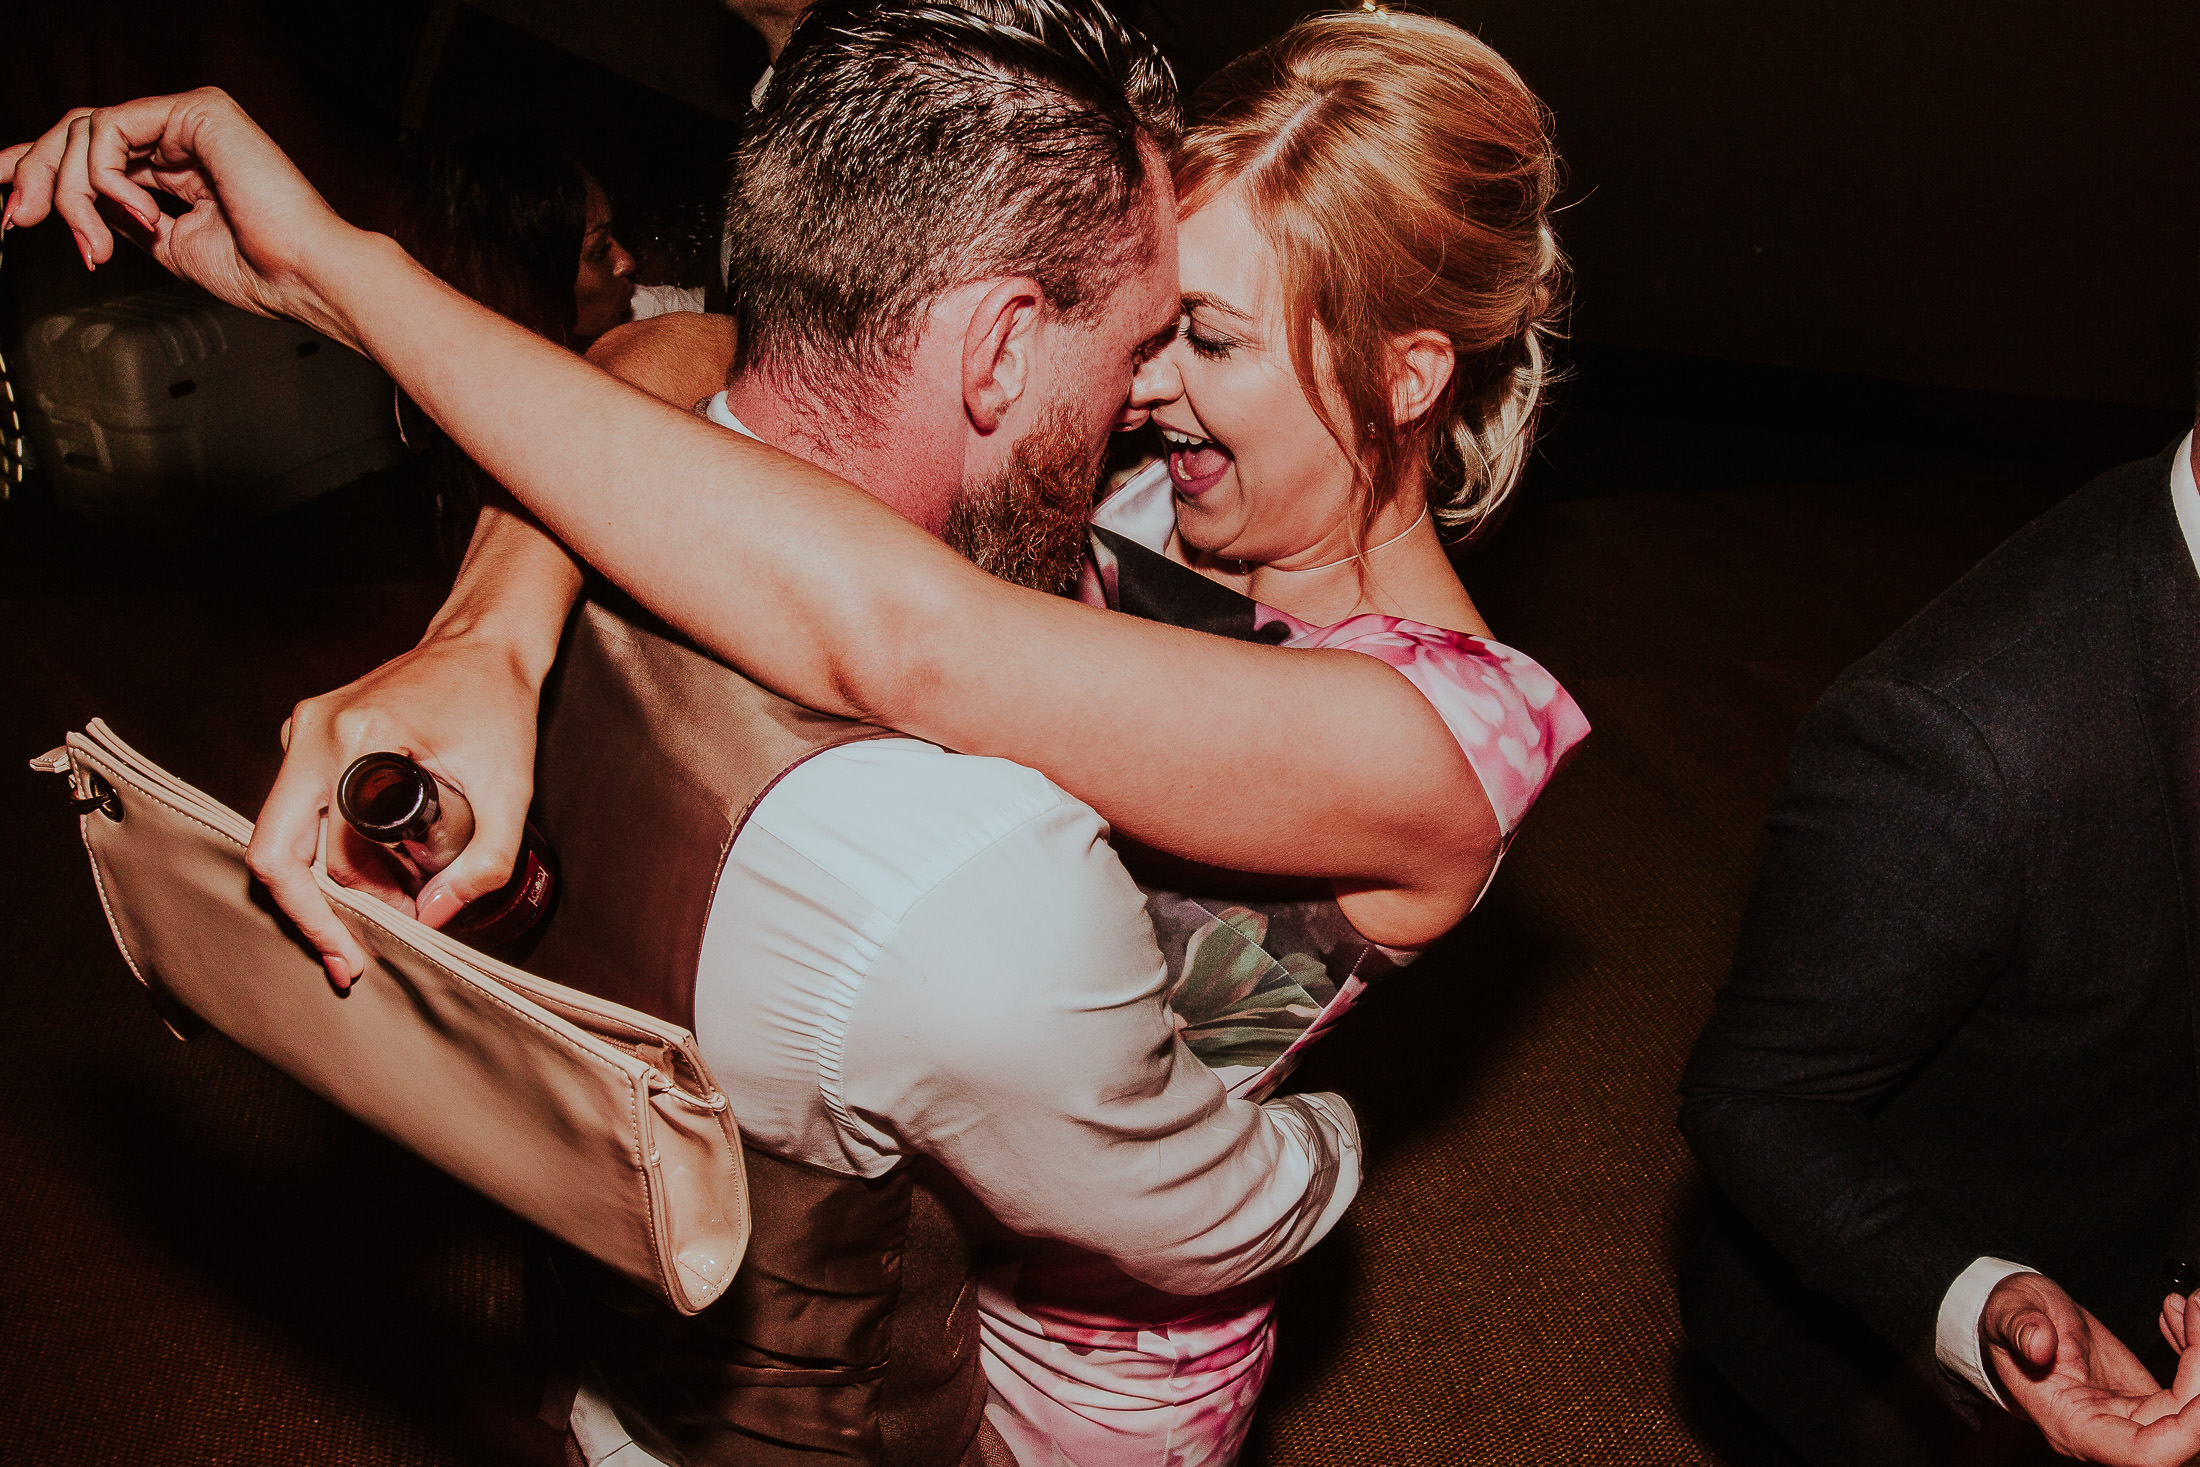 Liam+Alexis-Wedding-LowRes-442.jpg